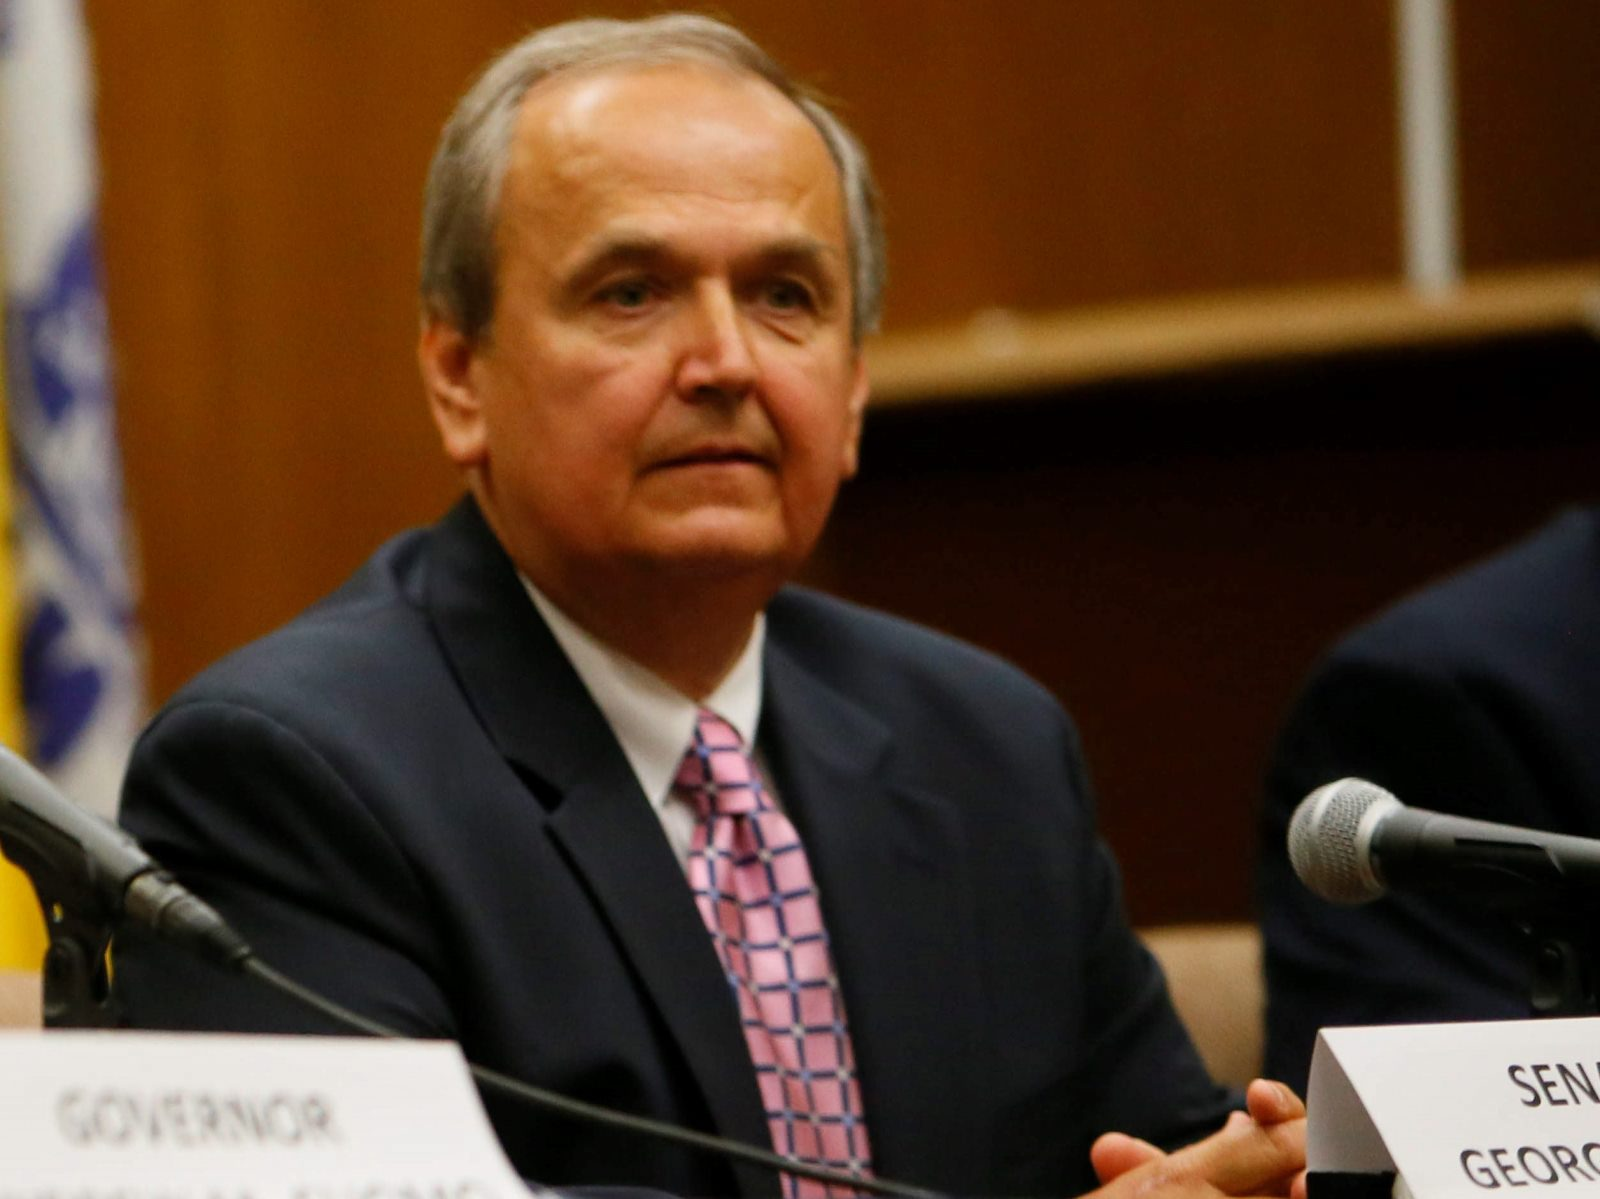 Former State Sen. George Maziarz has spent more than $255,000 from his campaign account on legal and accounting services since 2014. (News file photo)